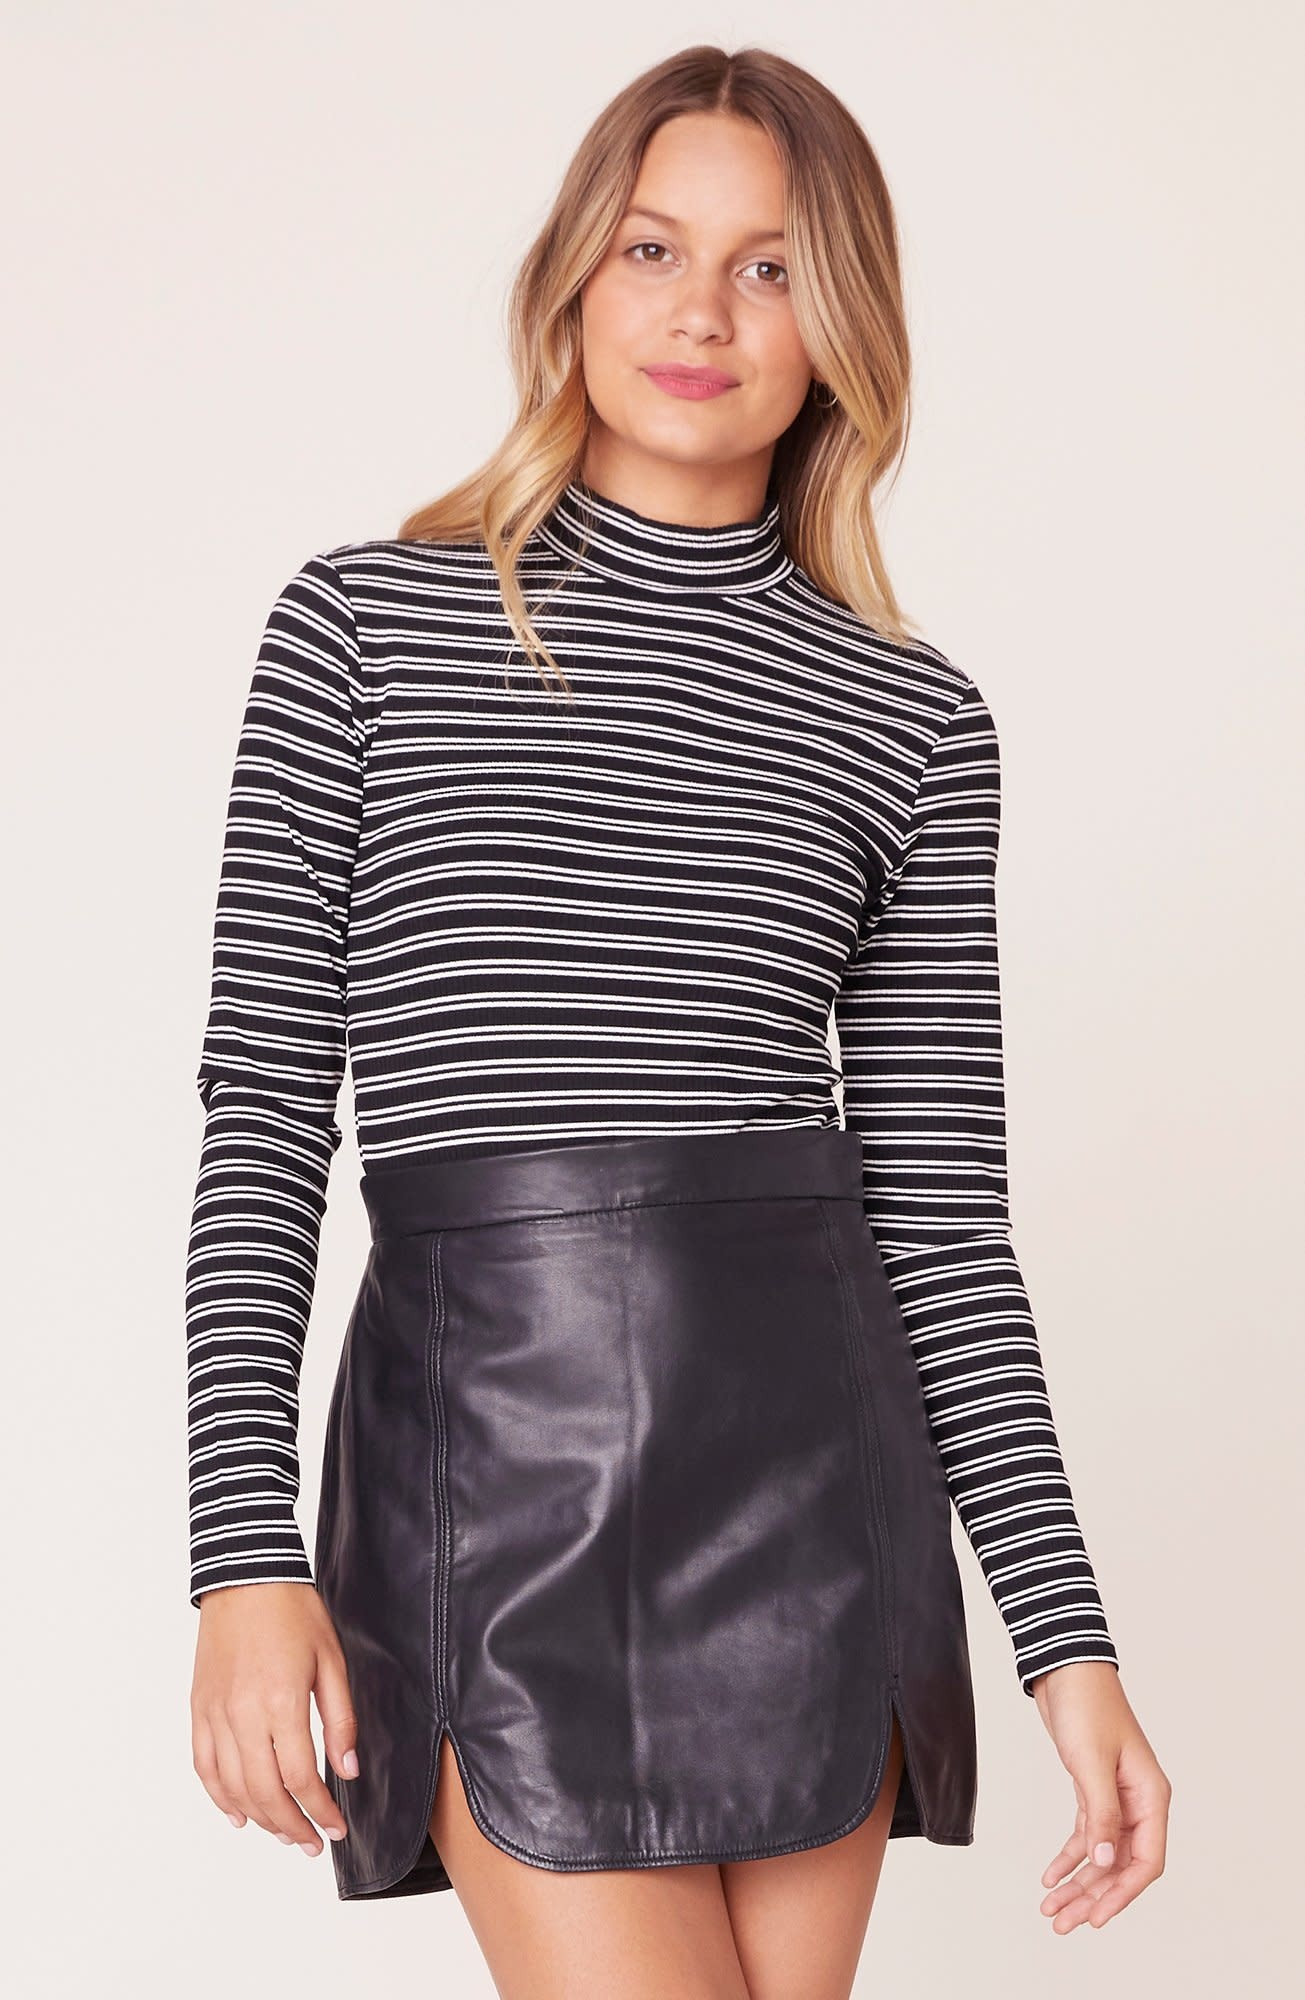 BB Dakota Jailbird Striped Mock Neck Top